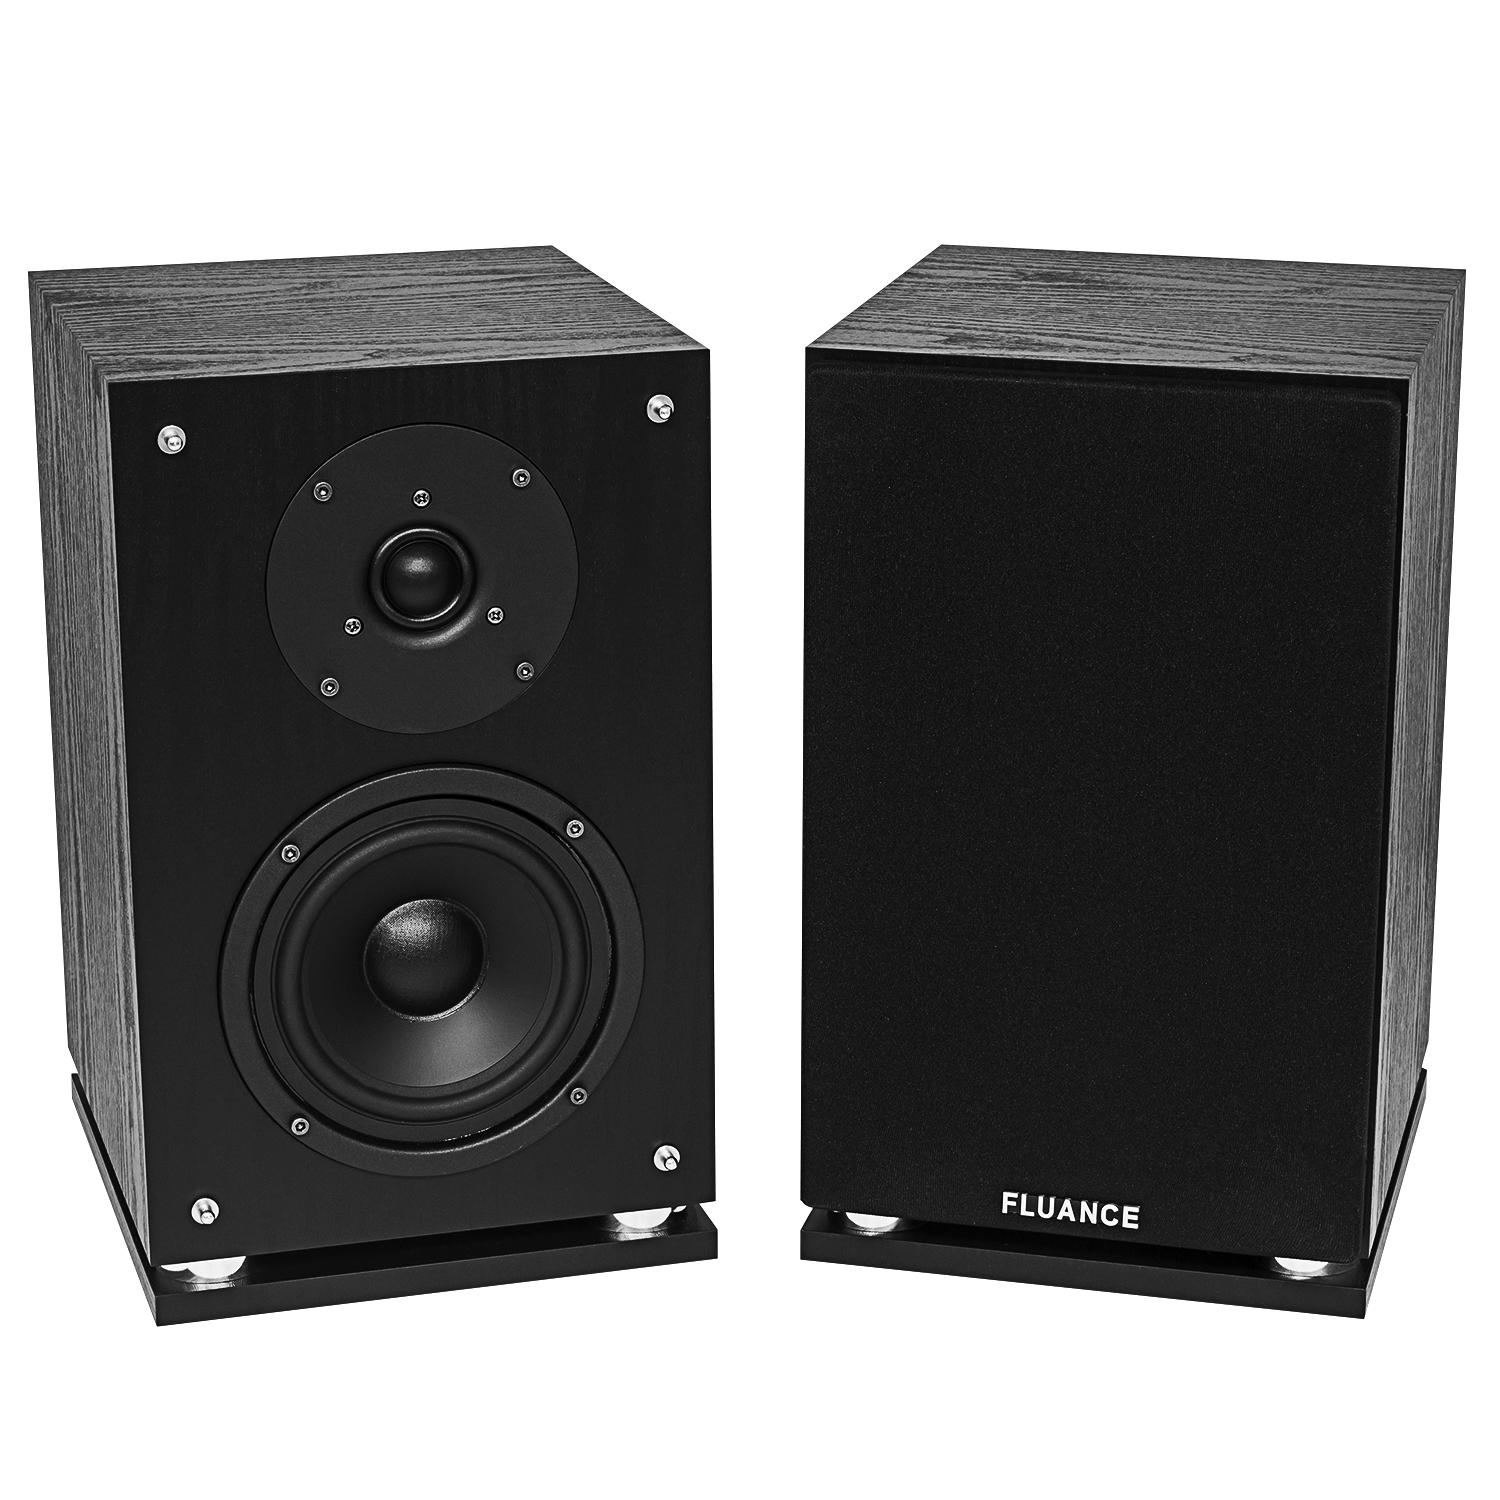 Fluance SX6-BK High Definition Two-Way Bookshelf Loudspeakers - Black Ash